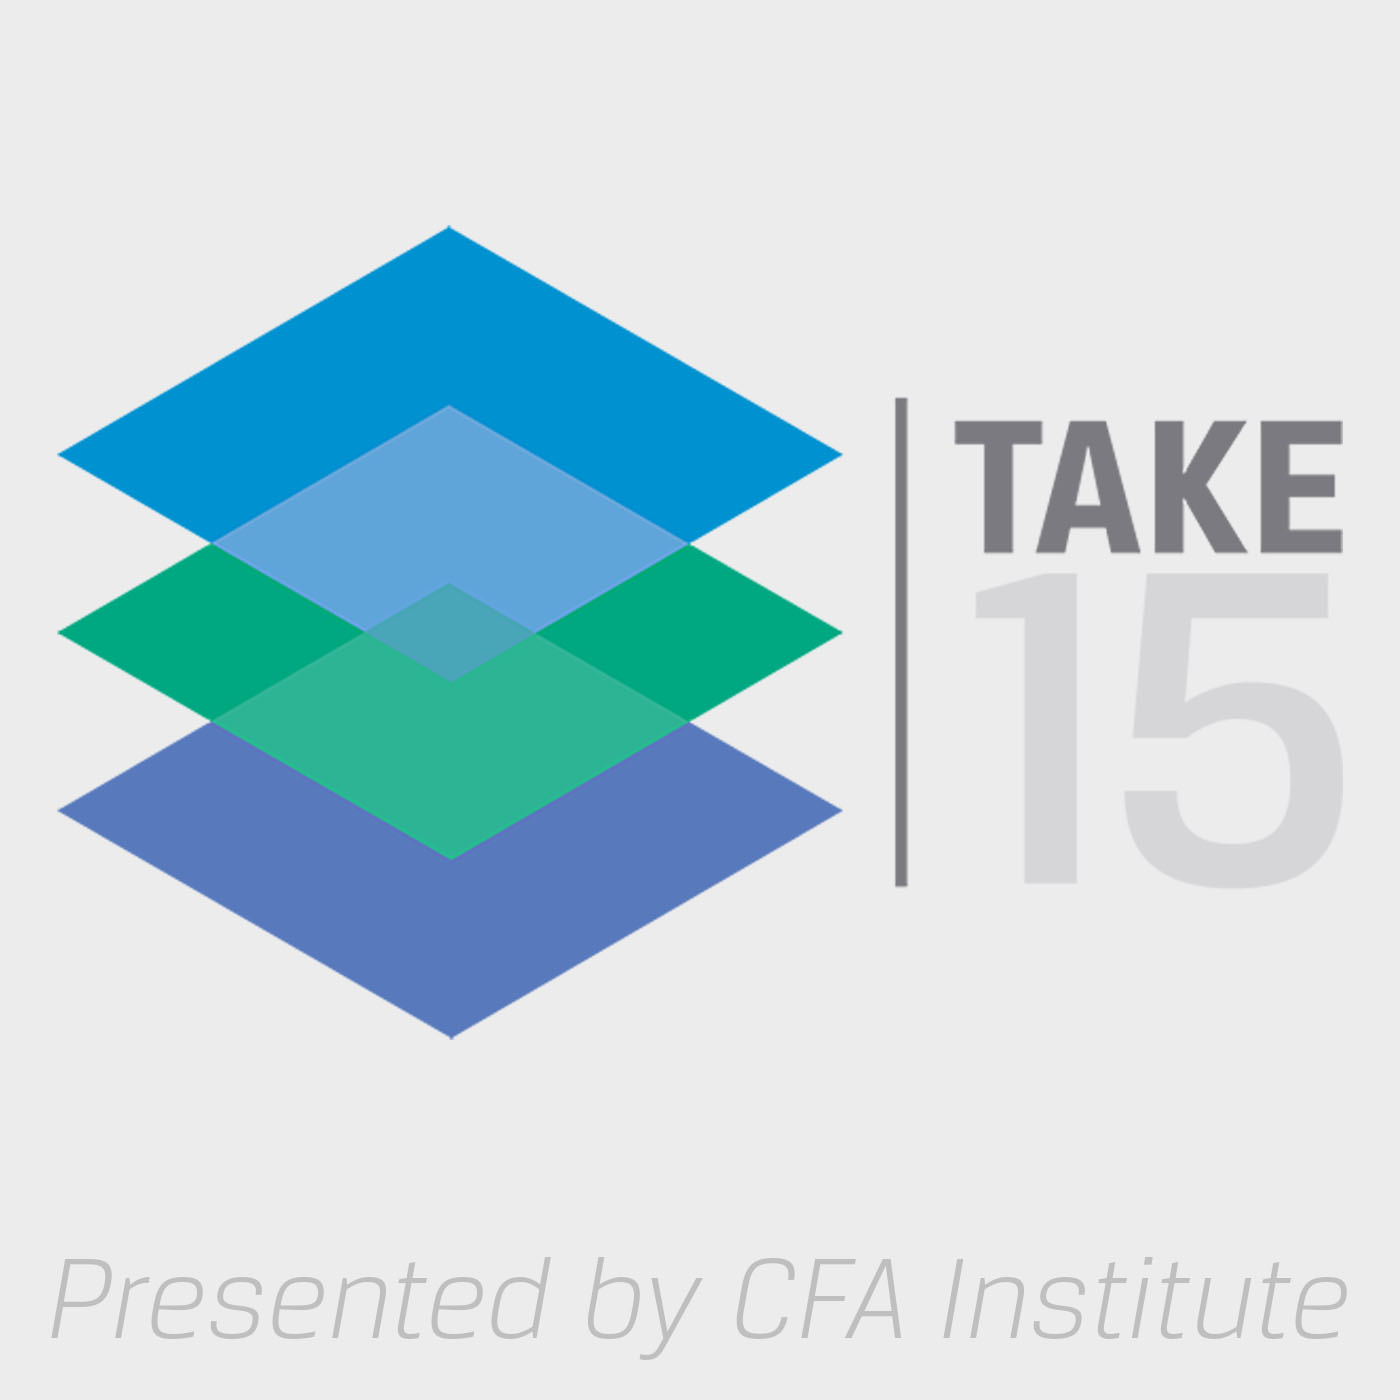 Take 15 Podcast Presented by CFA Institute show art